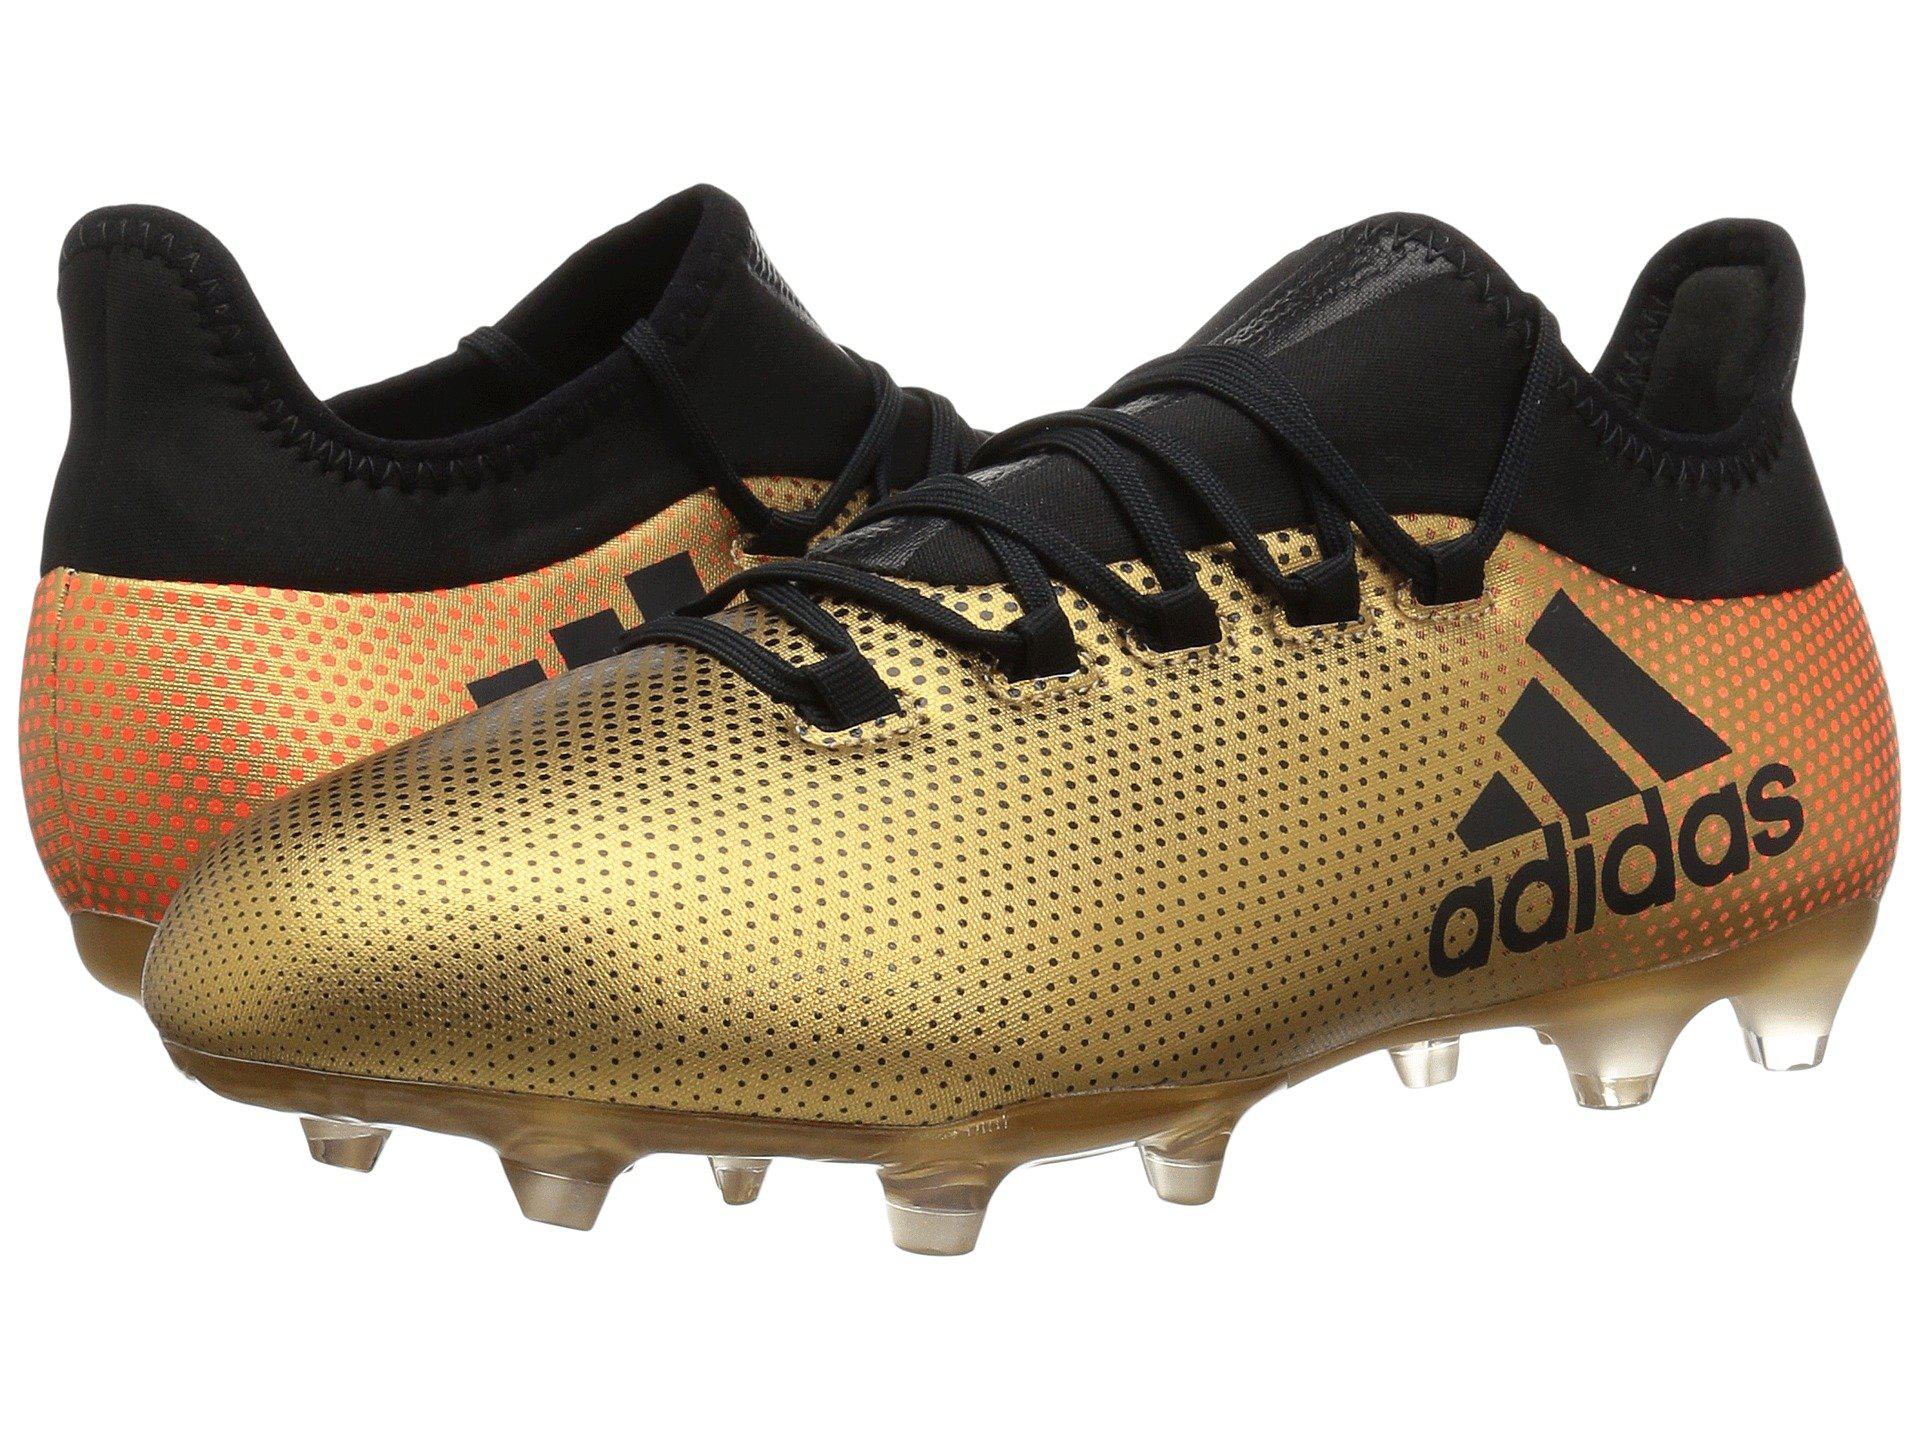 3d59fcbb5 Lyst - adidas X 17.2 Fg (tactile Gold black solar Red) Men s Soccer ...